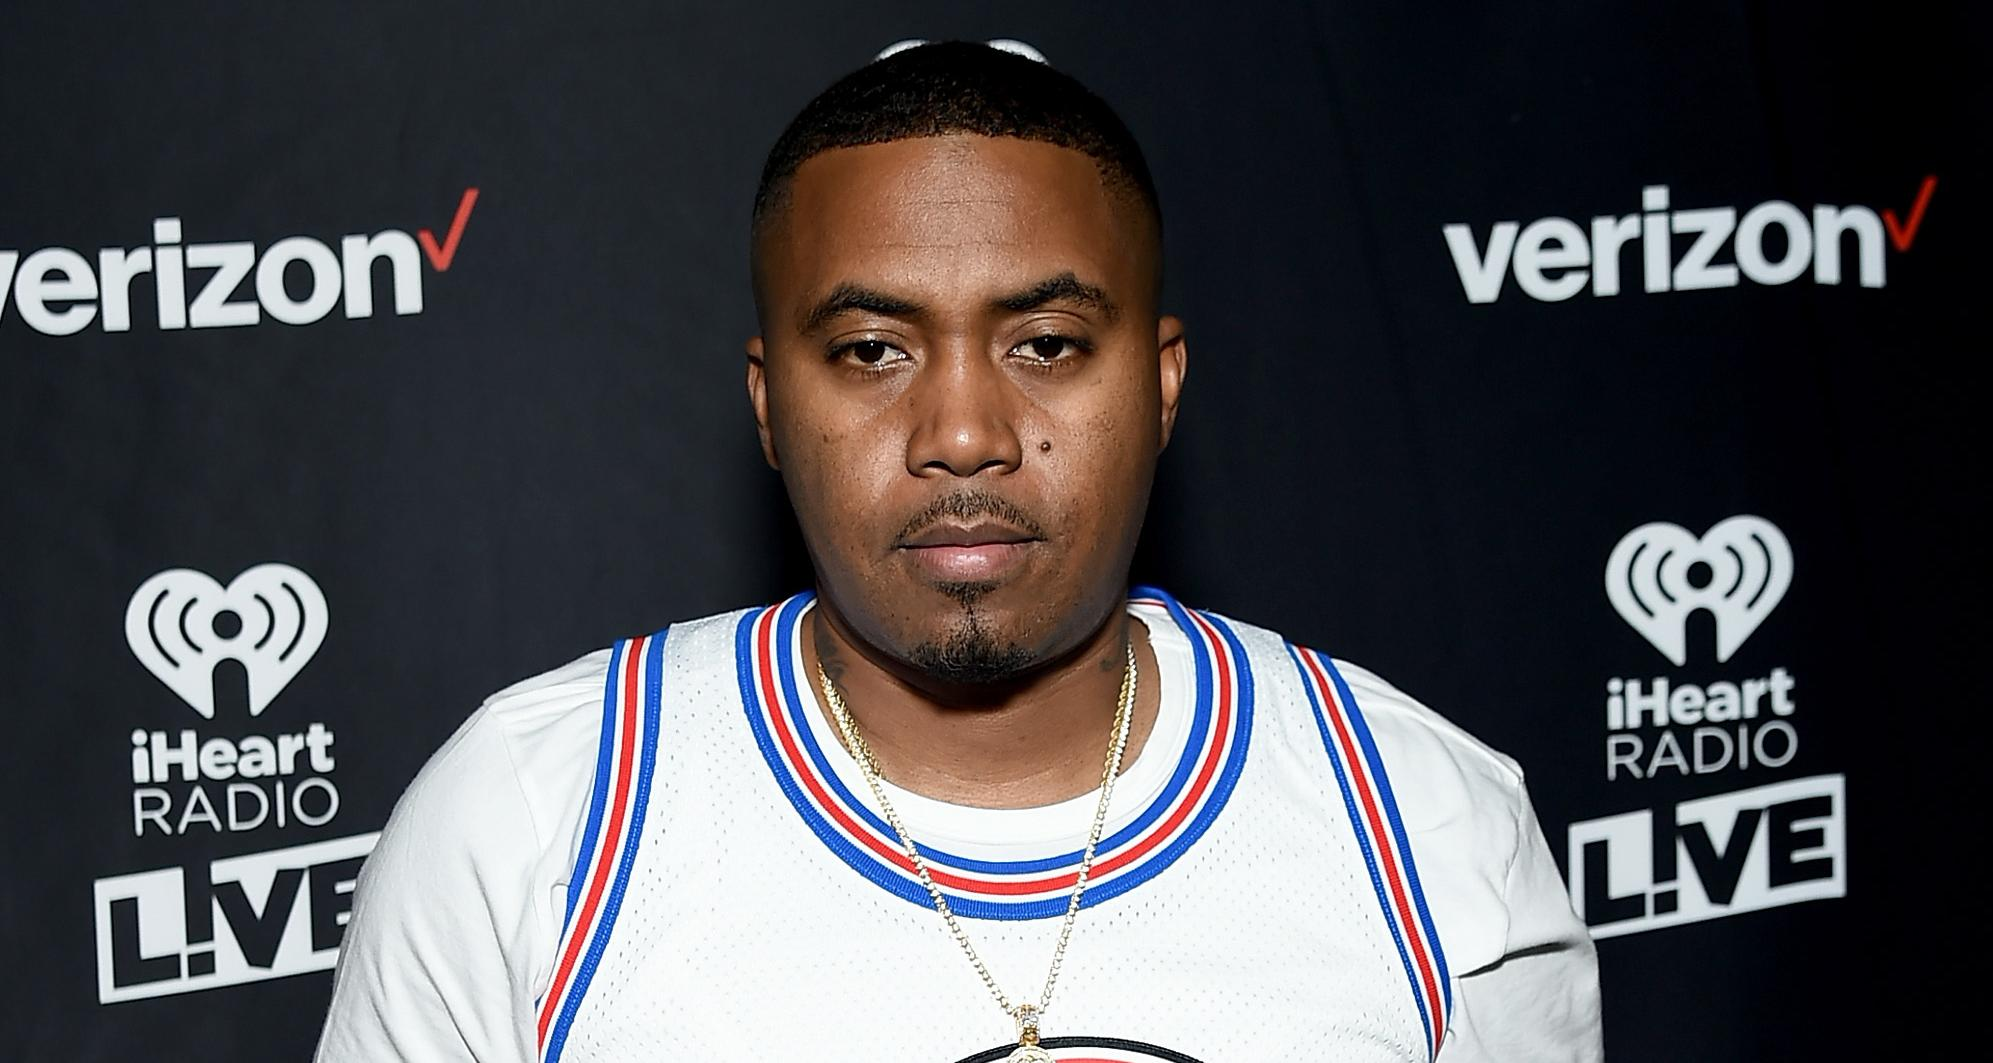 Nas' net worth in 2018